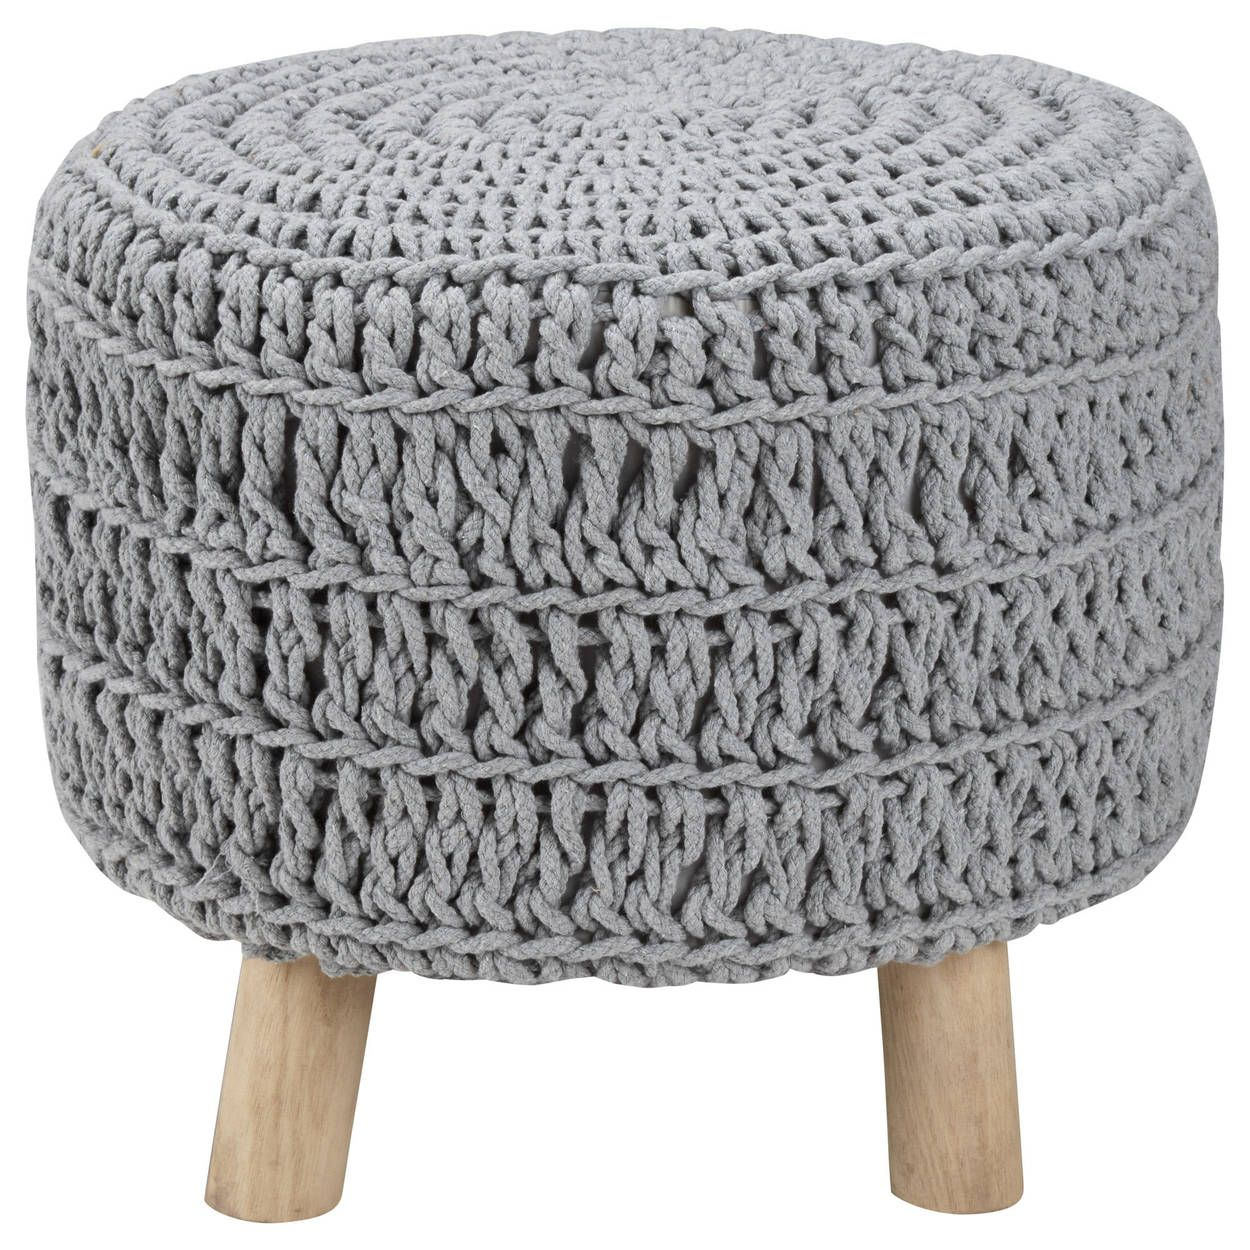 Wood And Cotton Knitted Ottoman Andlighet